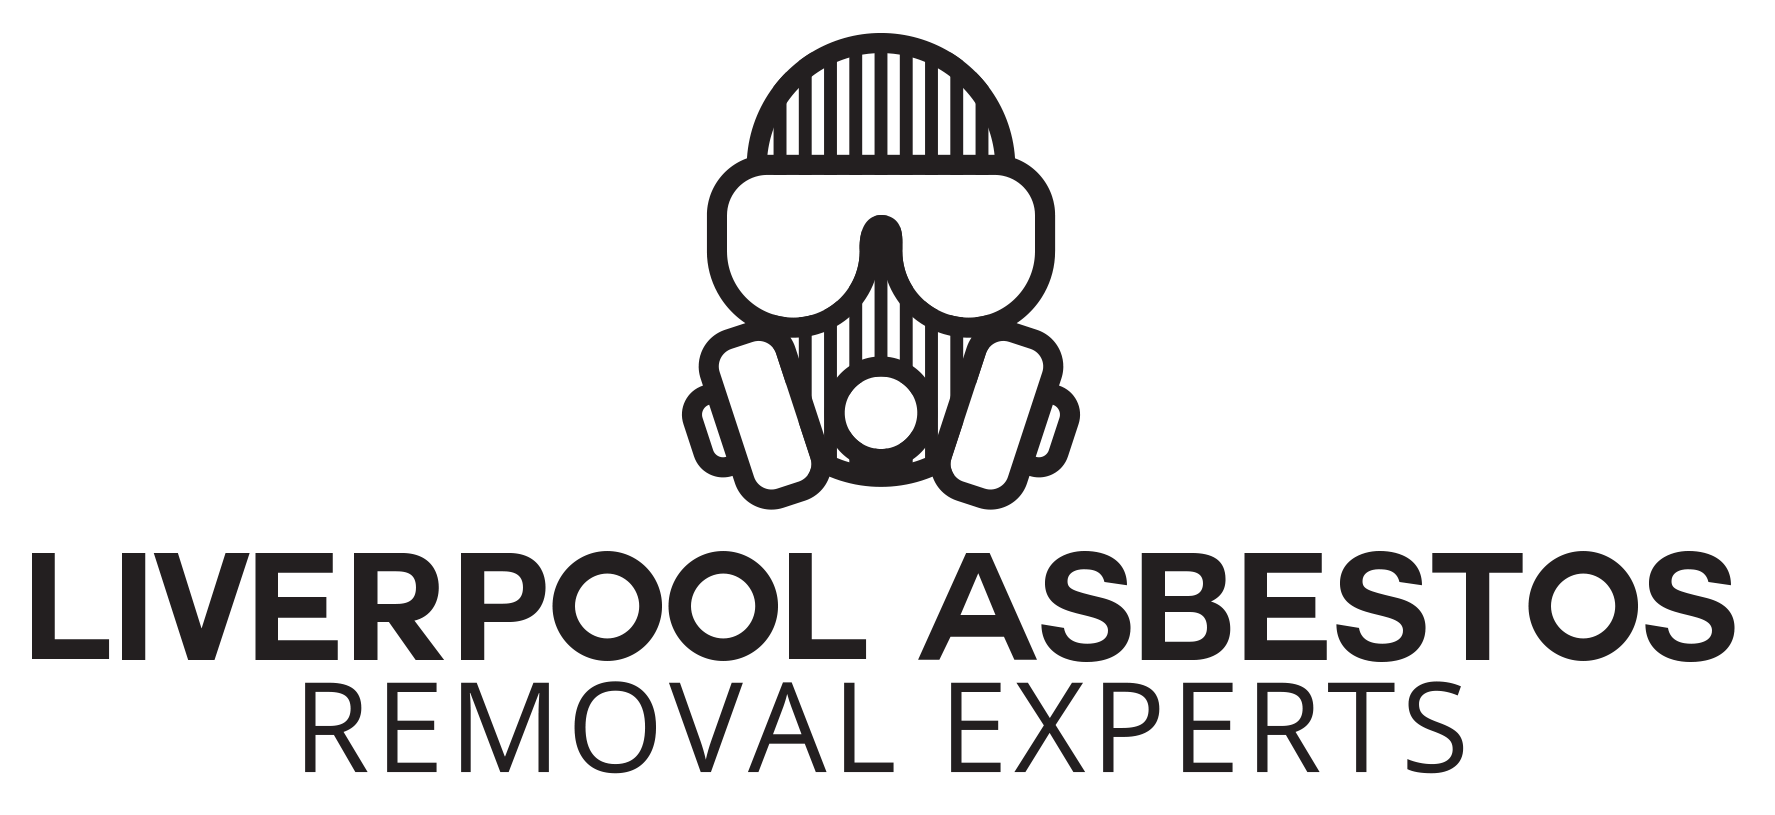 Liverpool Asbestos Removal Experts